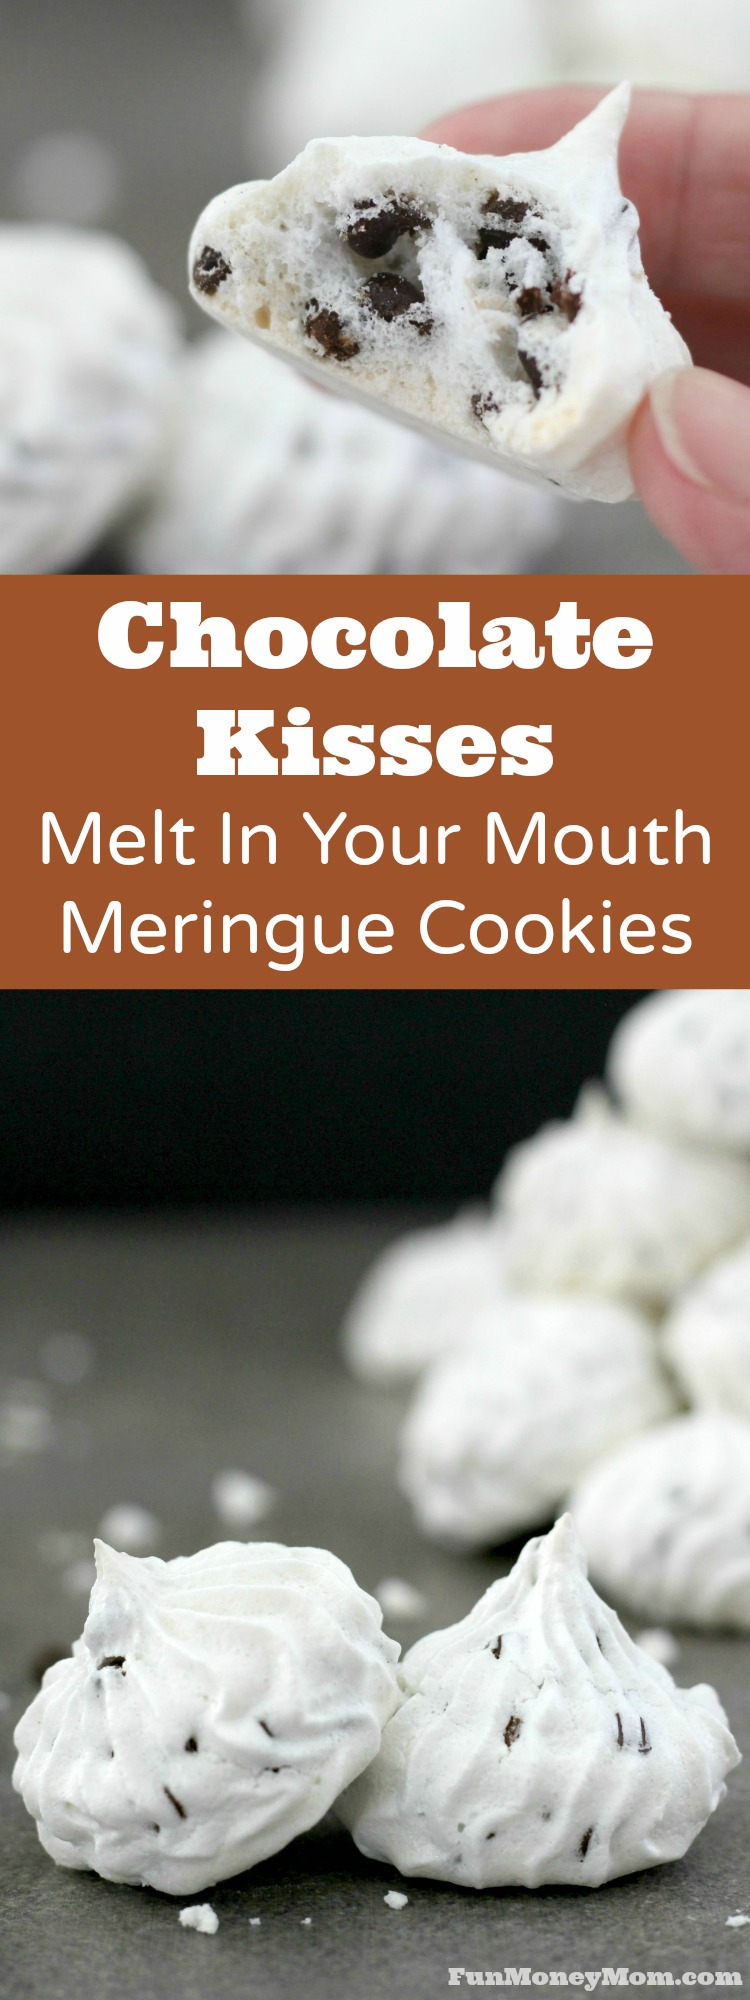 Chocolate Chip Meringue Cookies - Looking for a unique but absolutely delicious meringue cookie recipe? These Chocolate Kisses are melt in your mouth good!